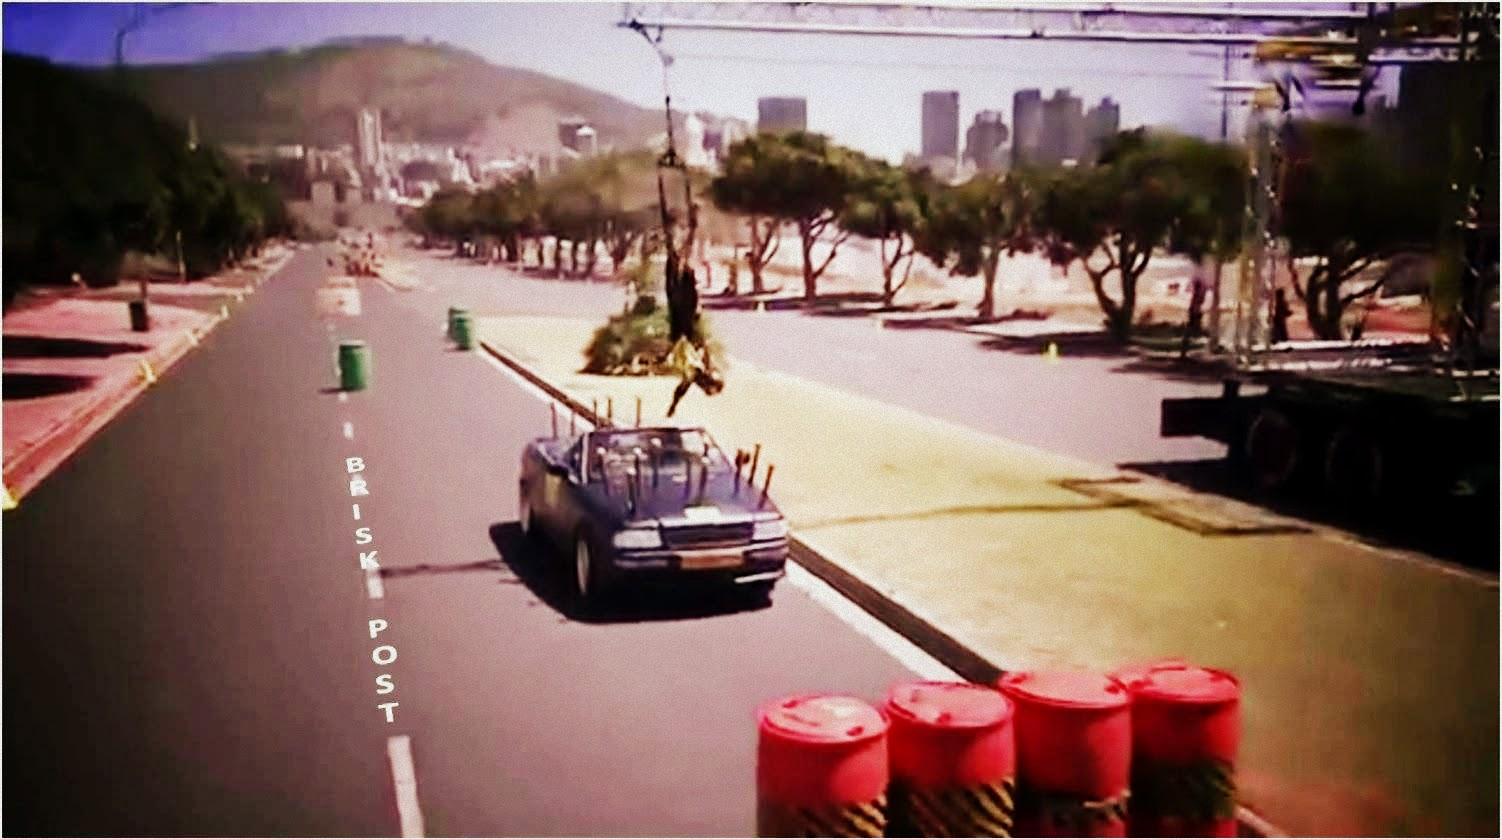 Khatron Ke Khiladi Car stunt with slow ride, hurdles, and flag collection